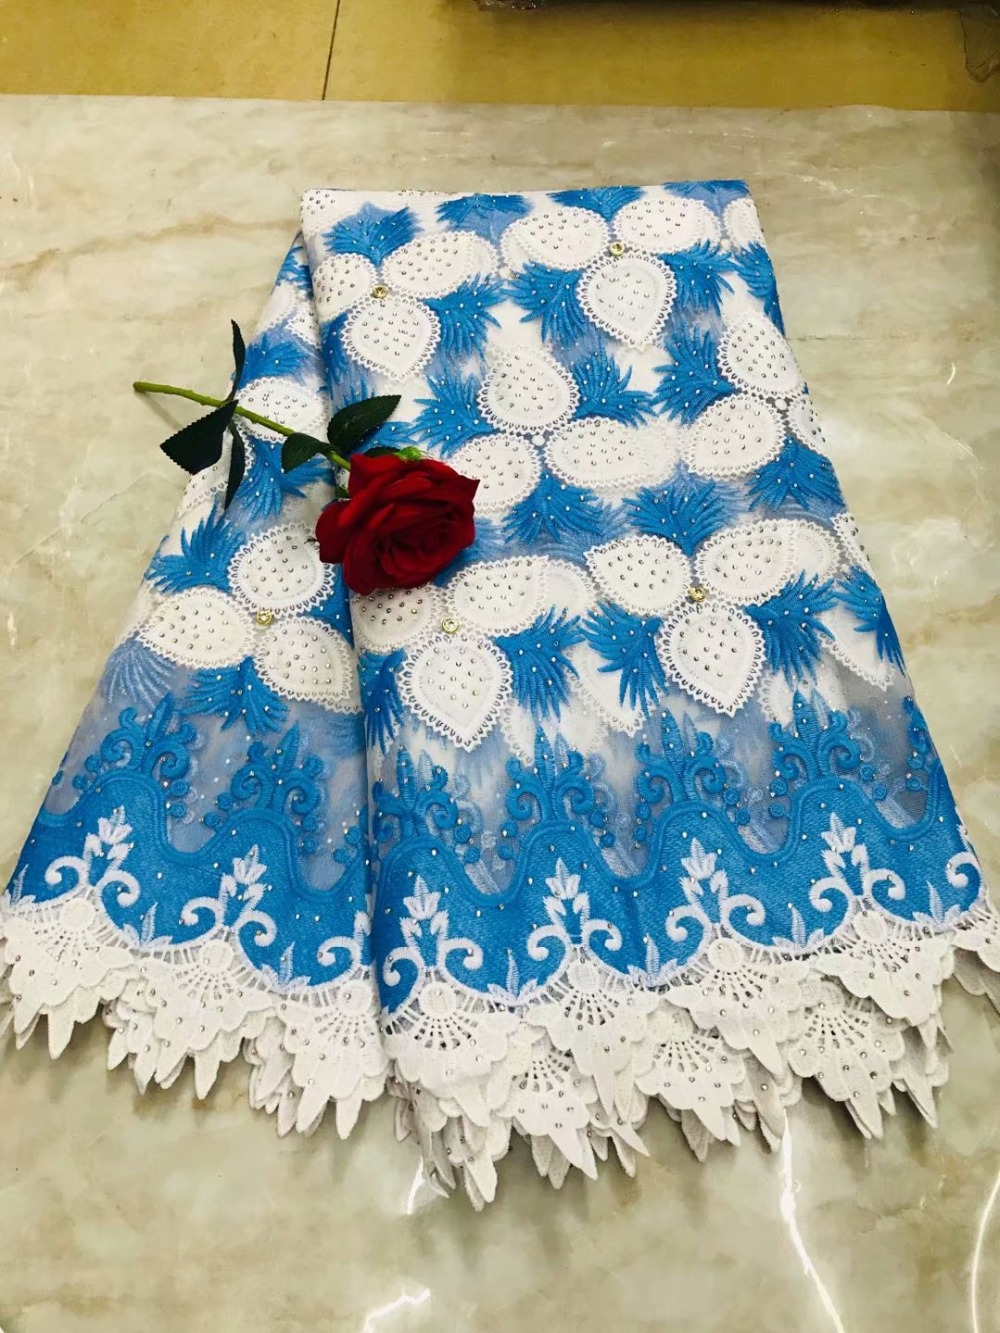 2019 Nigerian Tulle Lace Fabric Fast Shipping African Lace Fabric For Wedding Blue Embroidery Gold Ling Lace Fabric2019 Nigerian Tulle Lace Fabric Fast Shipping African Lace Fabric For Wedding Blue Embroidery Gold Ling Lace Fabric